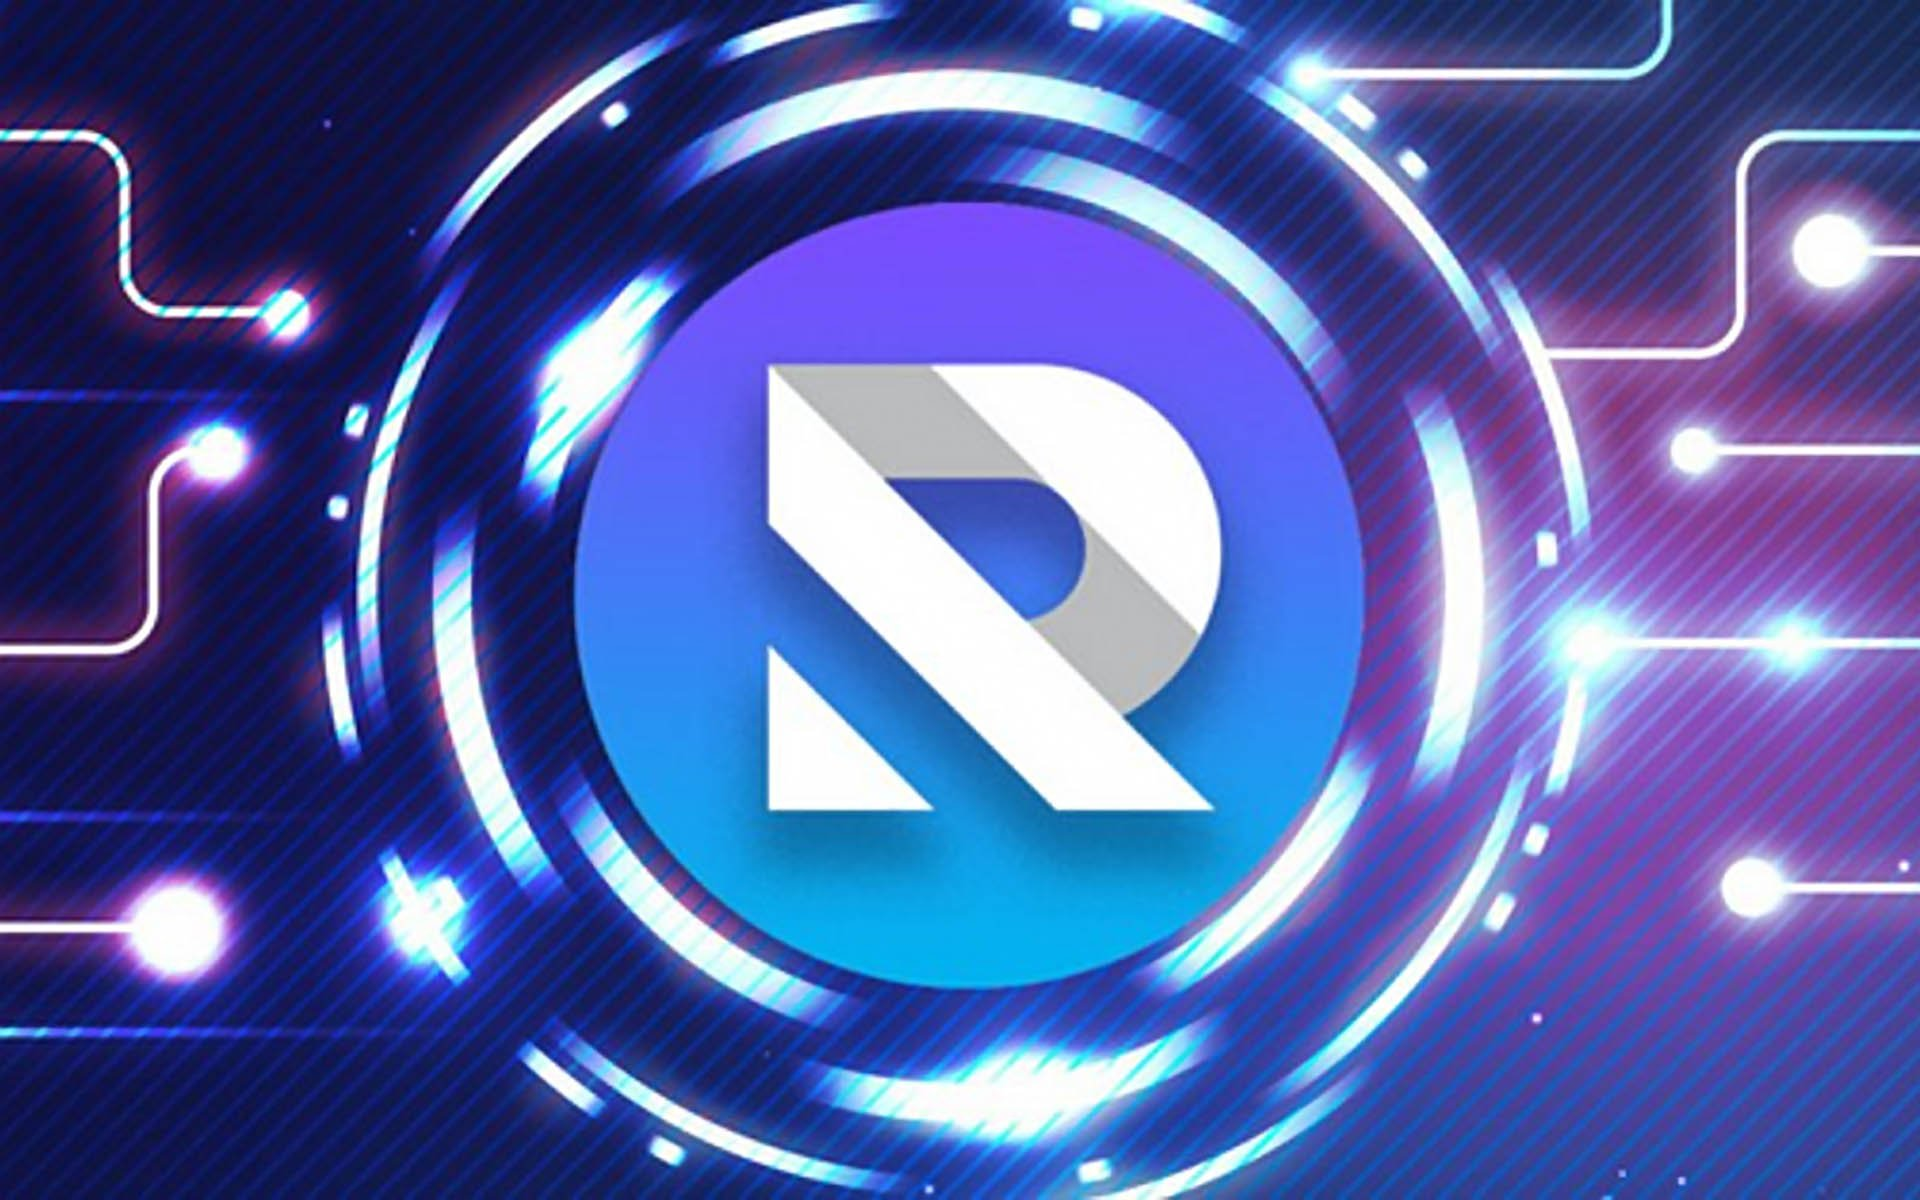 Rilcoin RIL Token Pre-Sale Goes Live at a Special Bonus of 30% - ERC20 Tokens to Be Given Out